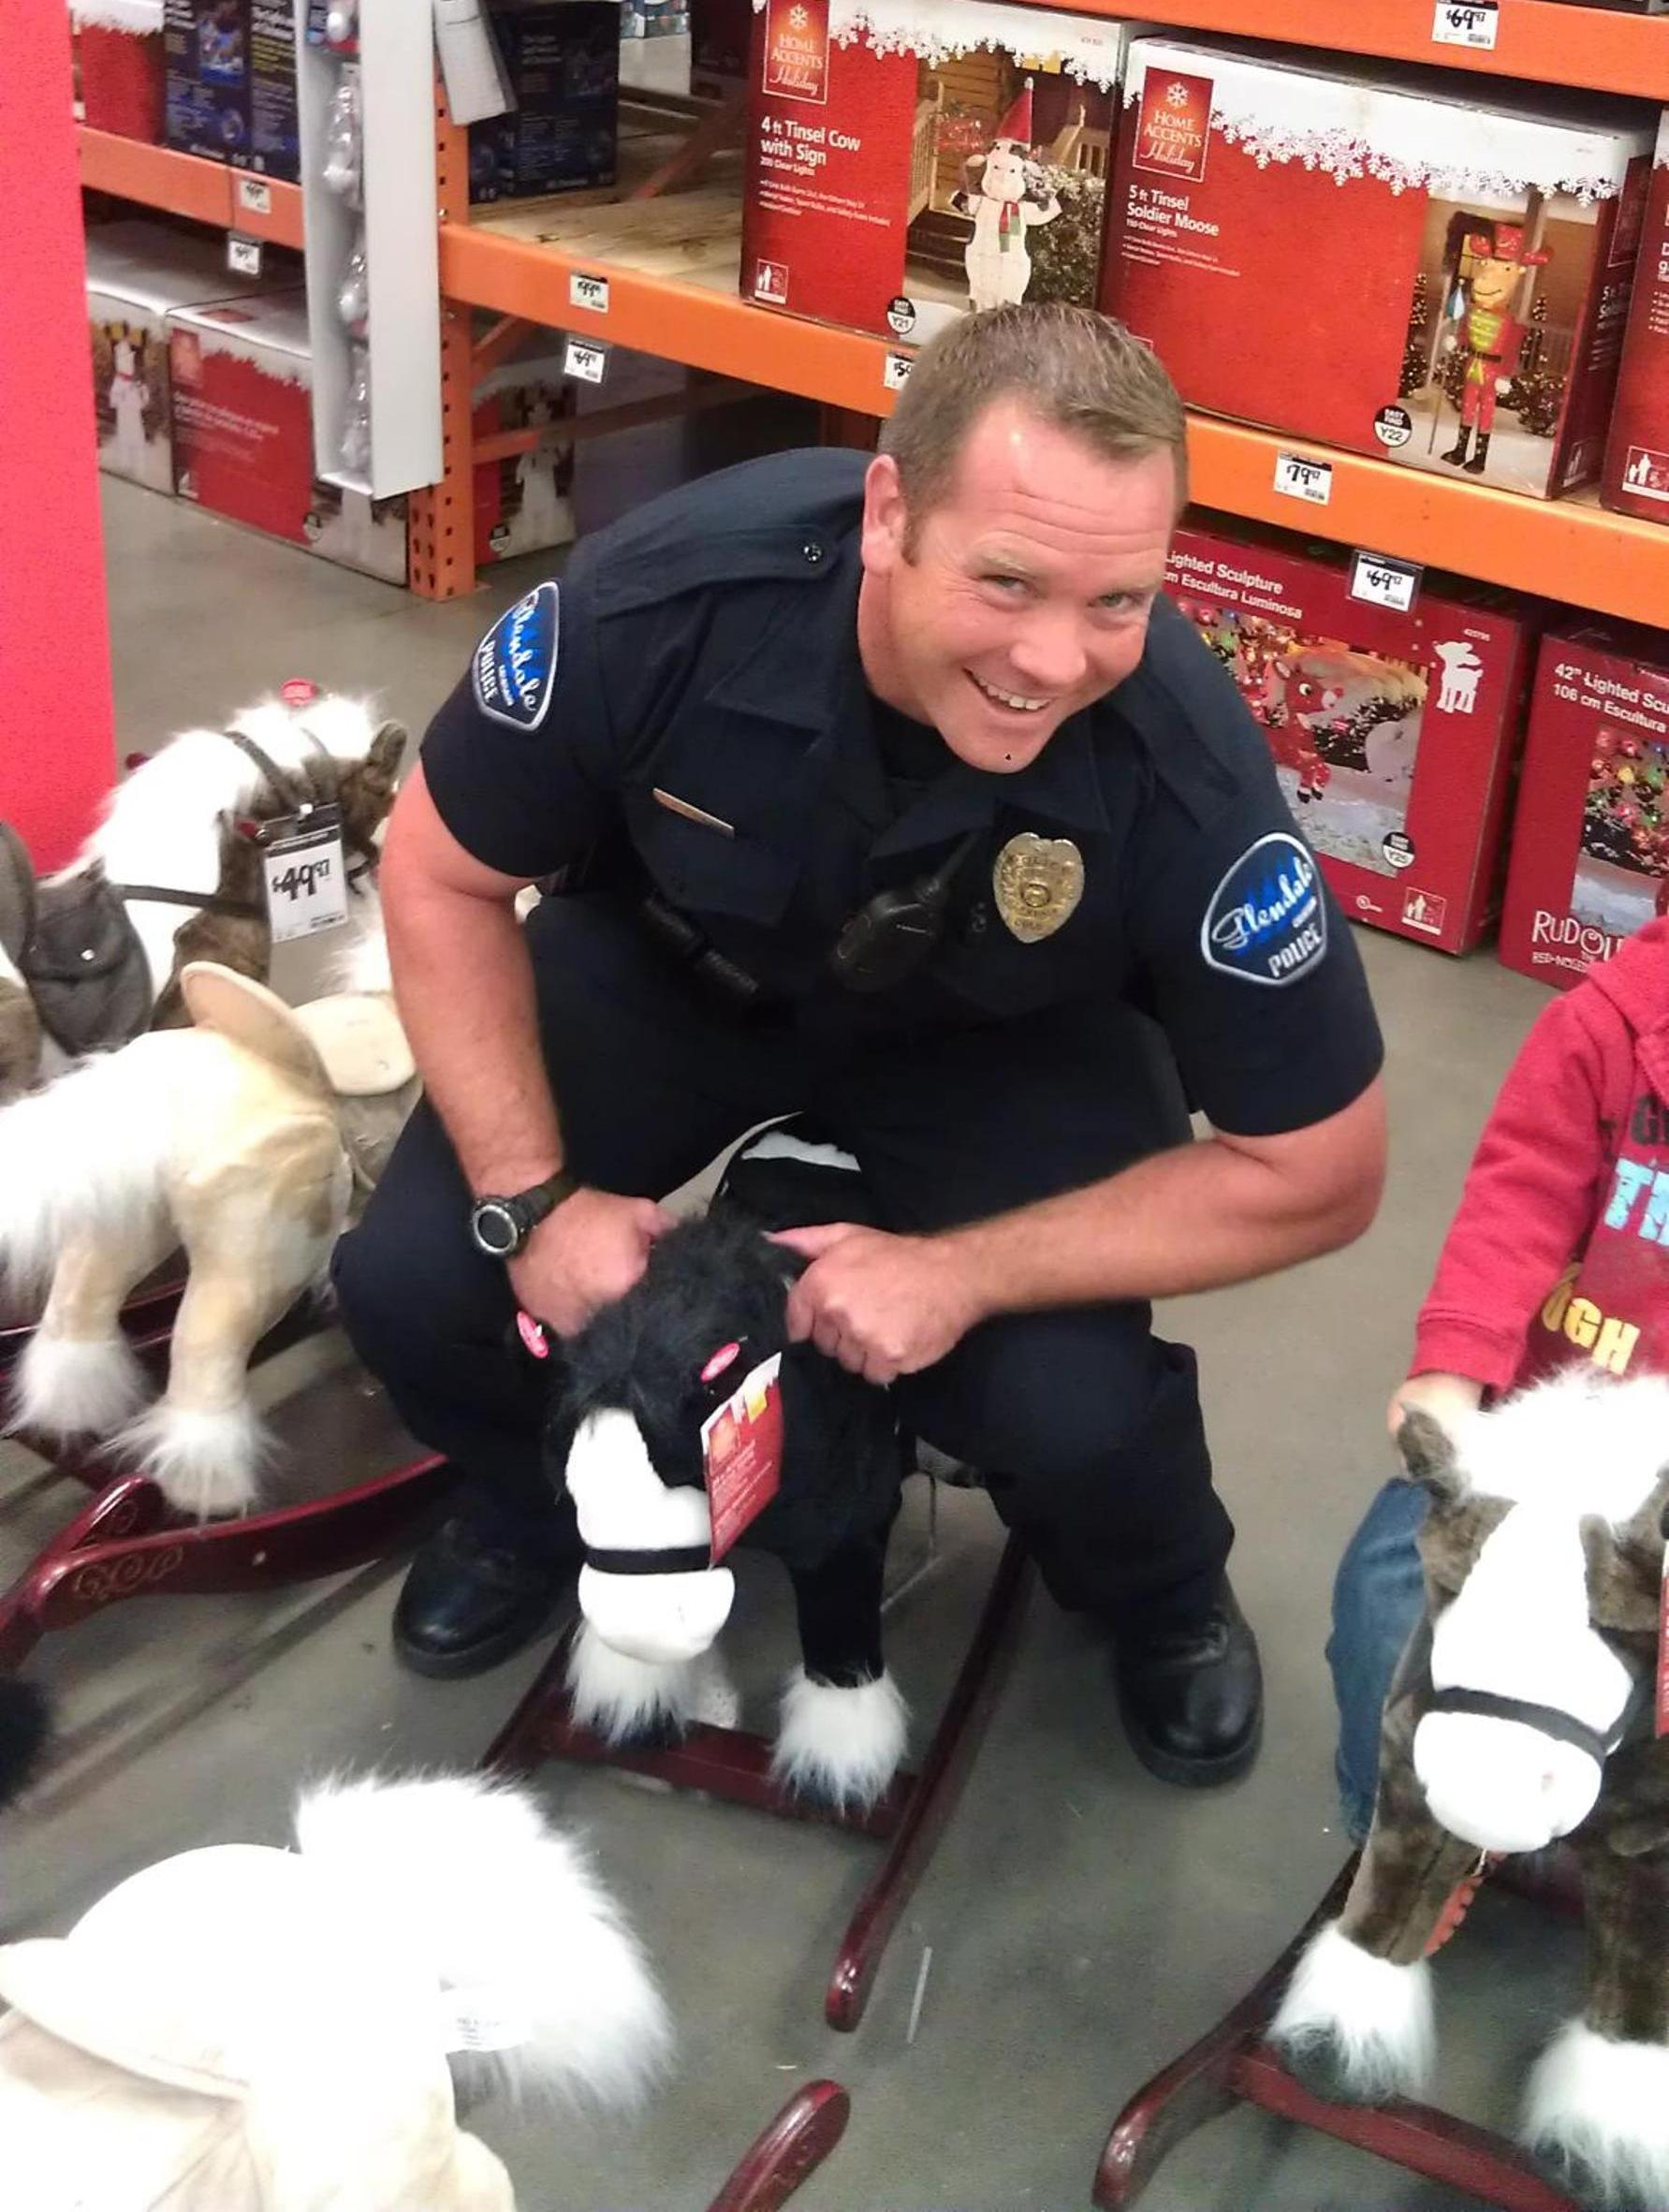 Officer Loar on a children's rocking horse